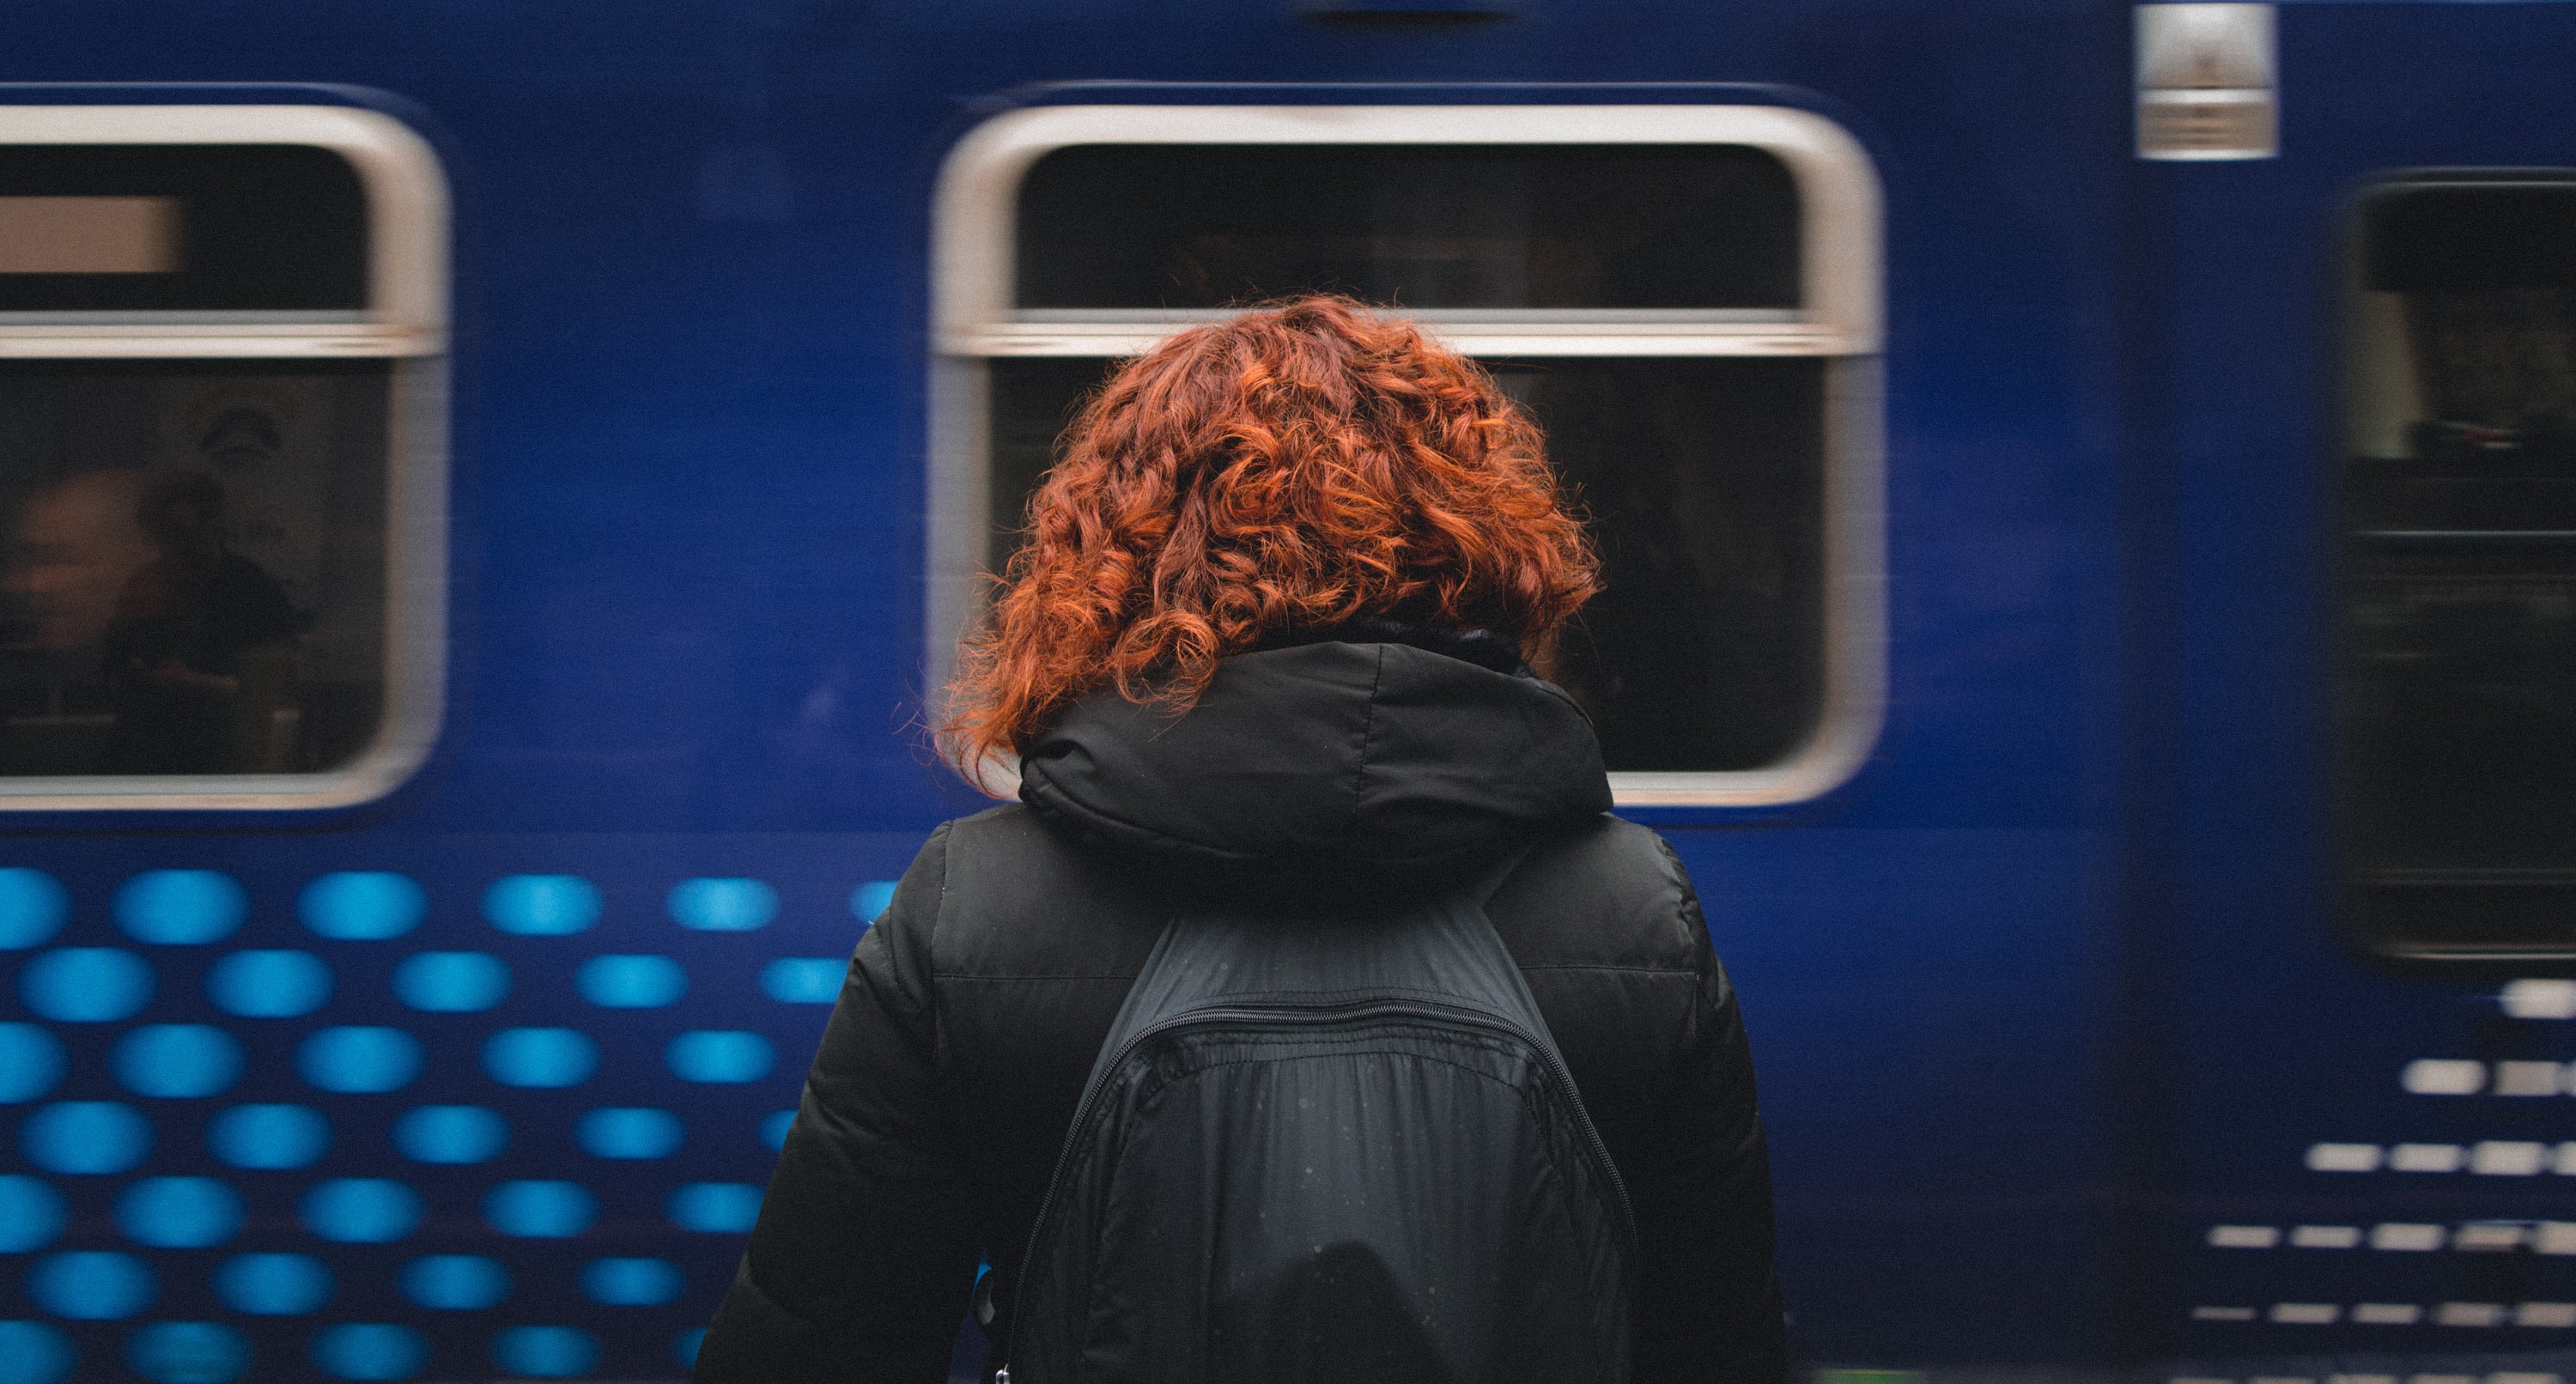 woman wearing black hooded jacket and black backpack standing in front of moving blue train